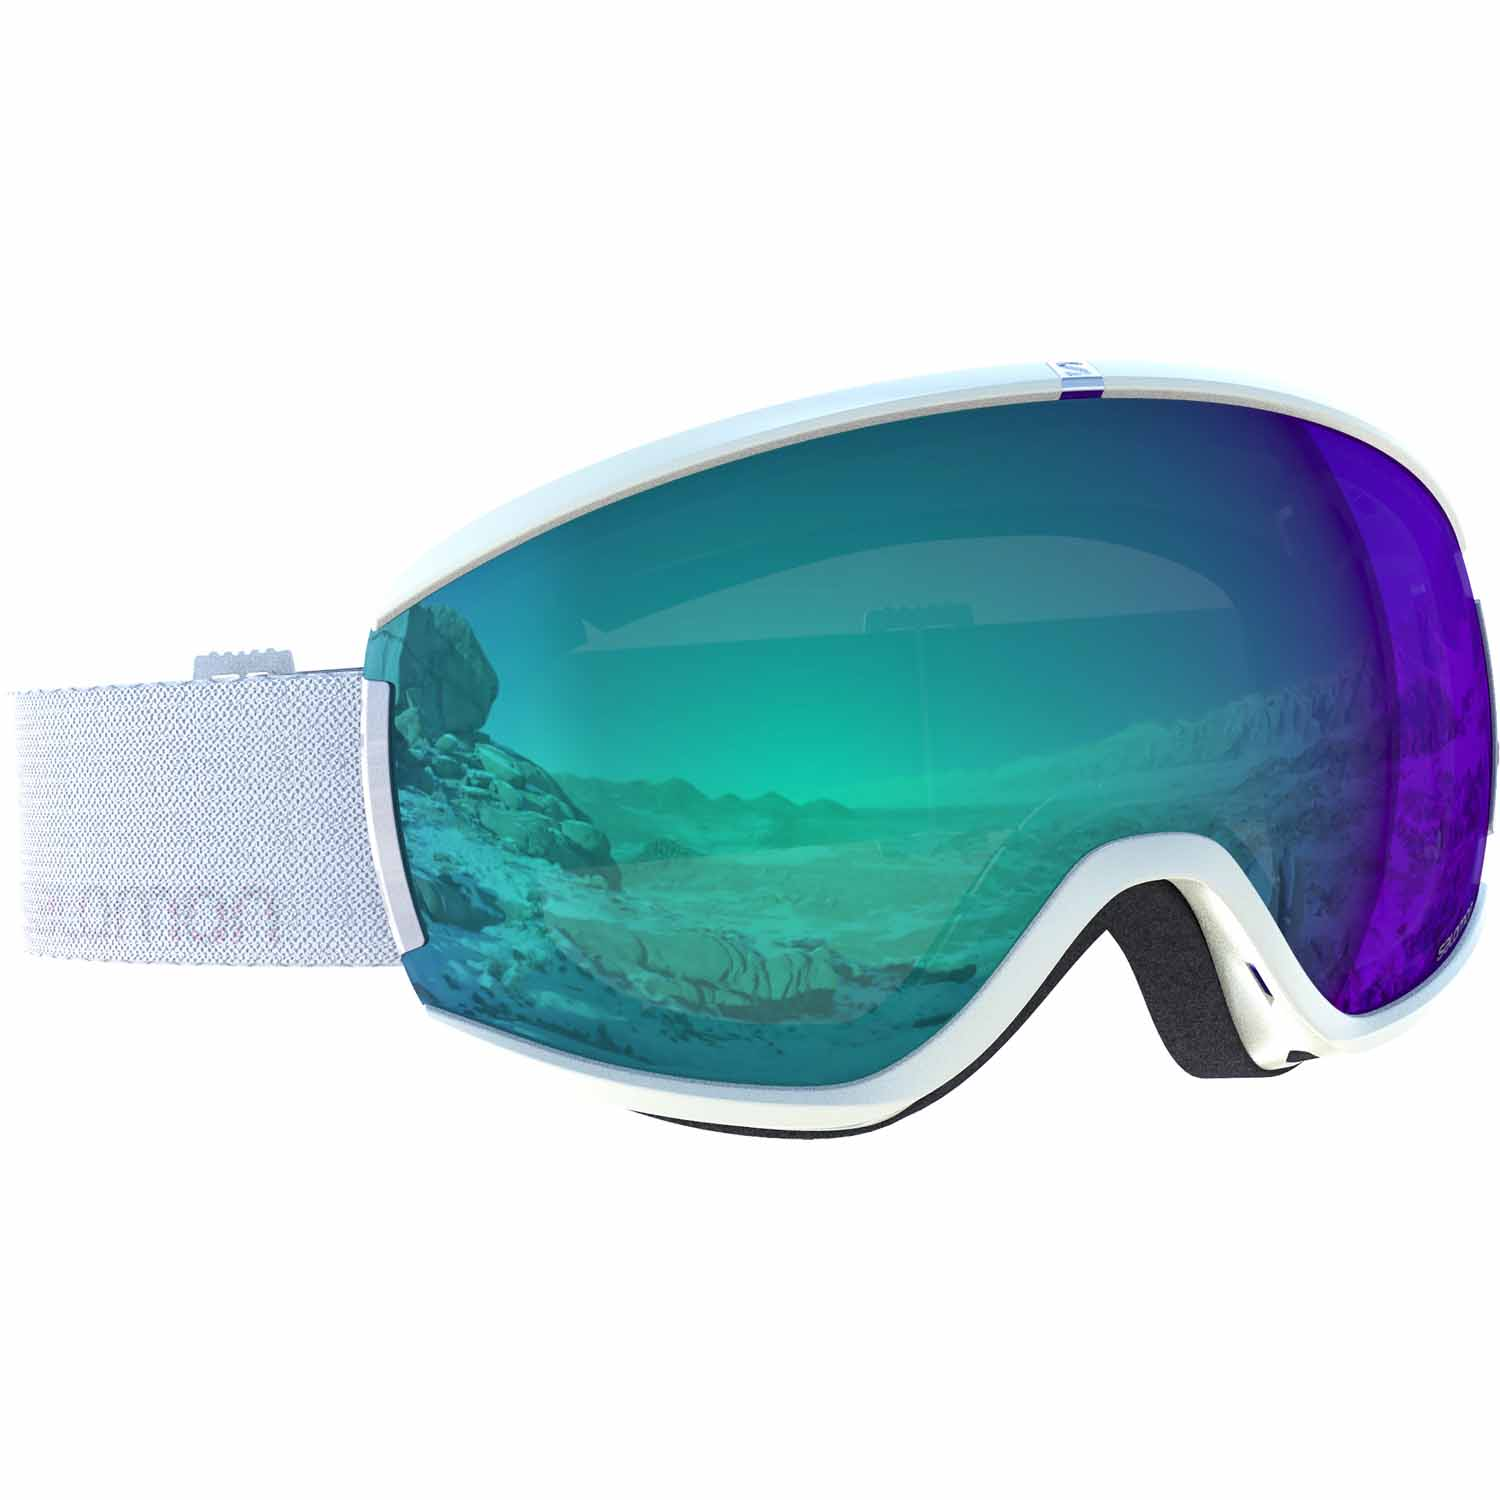 2017-18 Salomon Ivy Womens Ski Goggle white